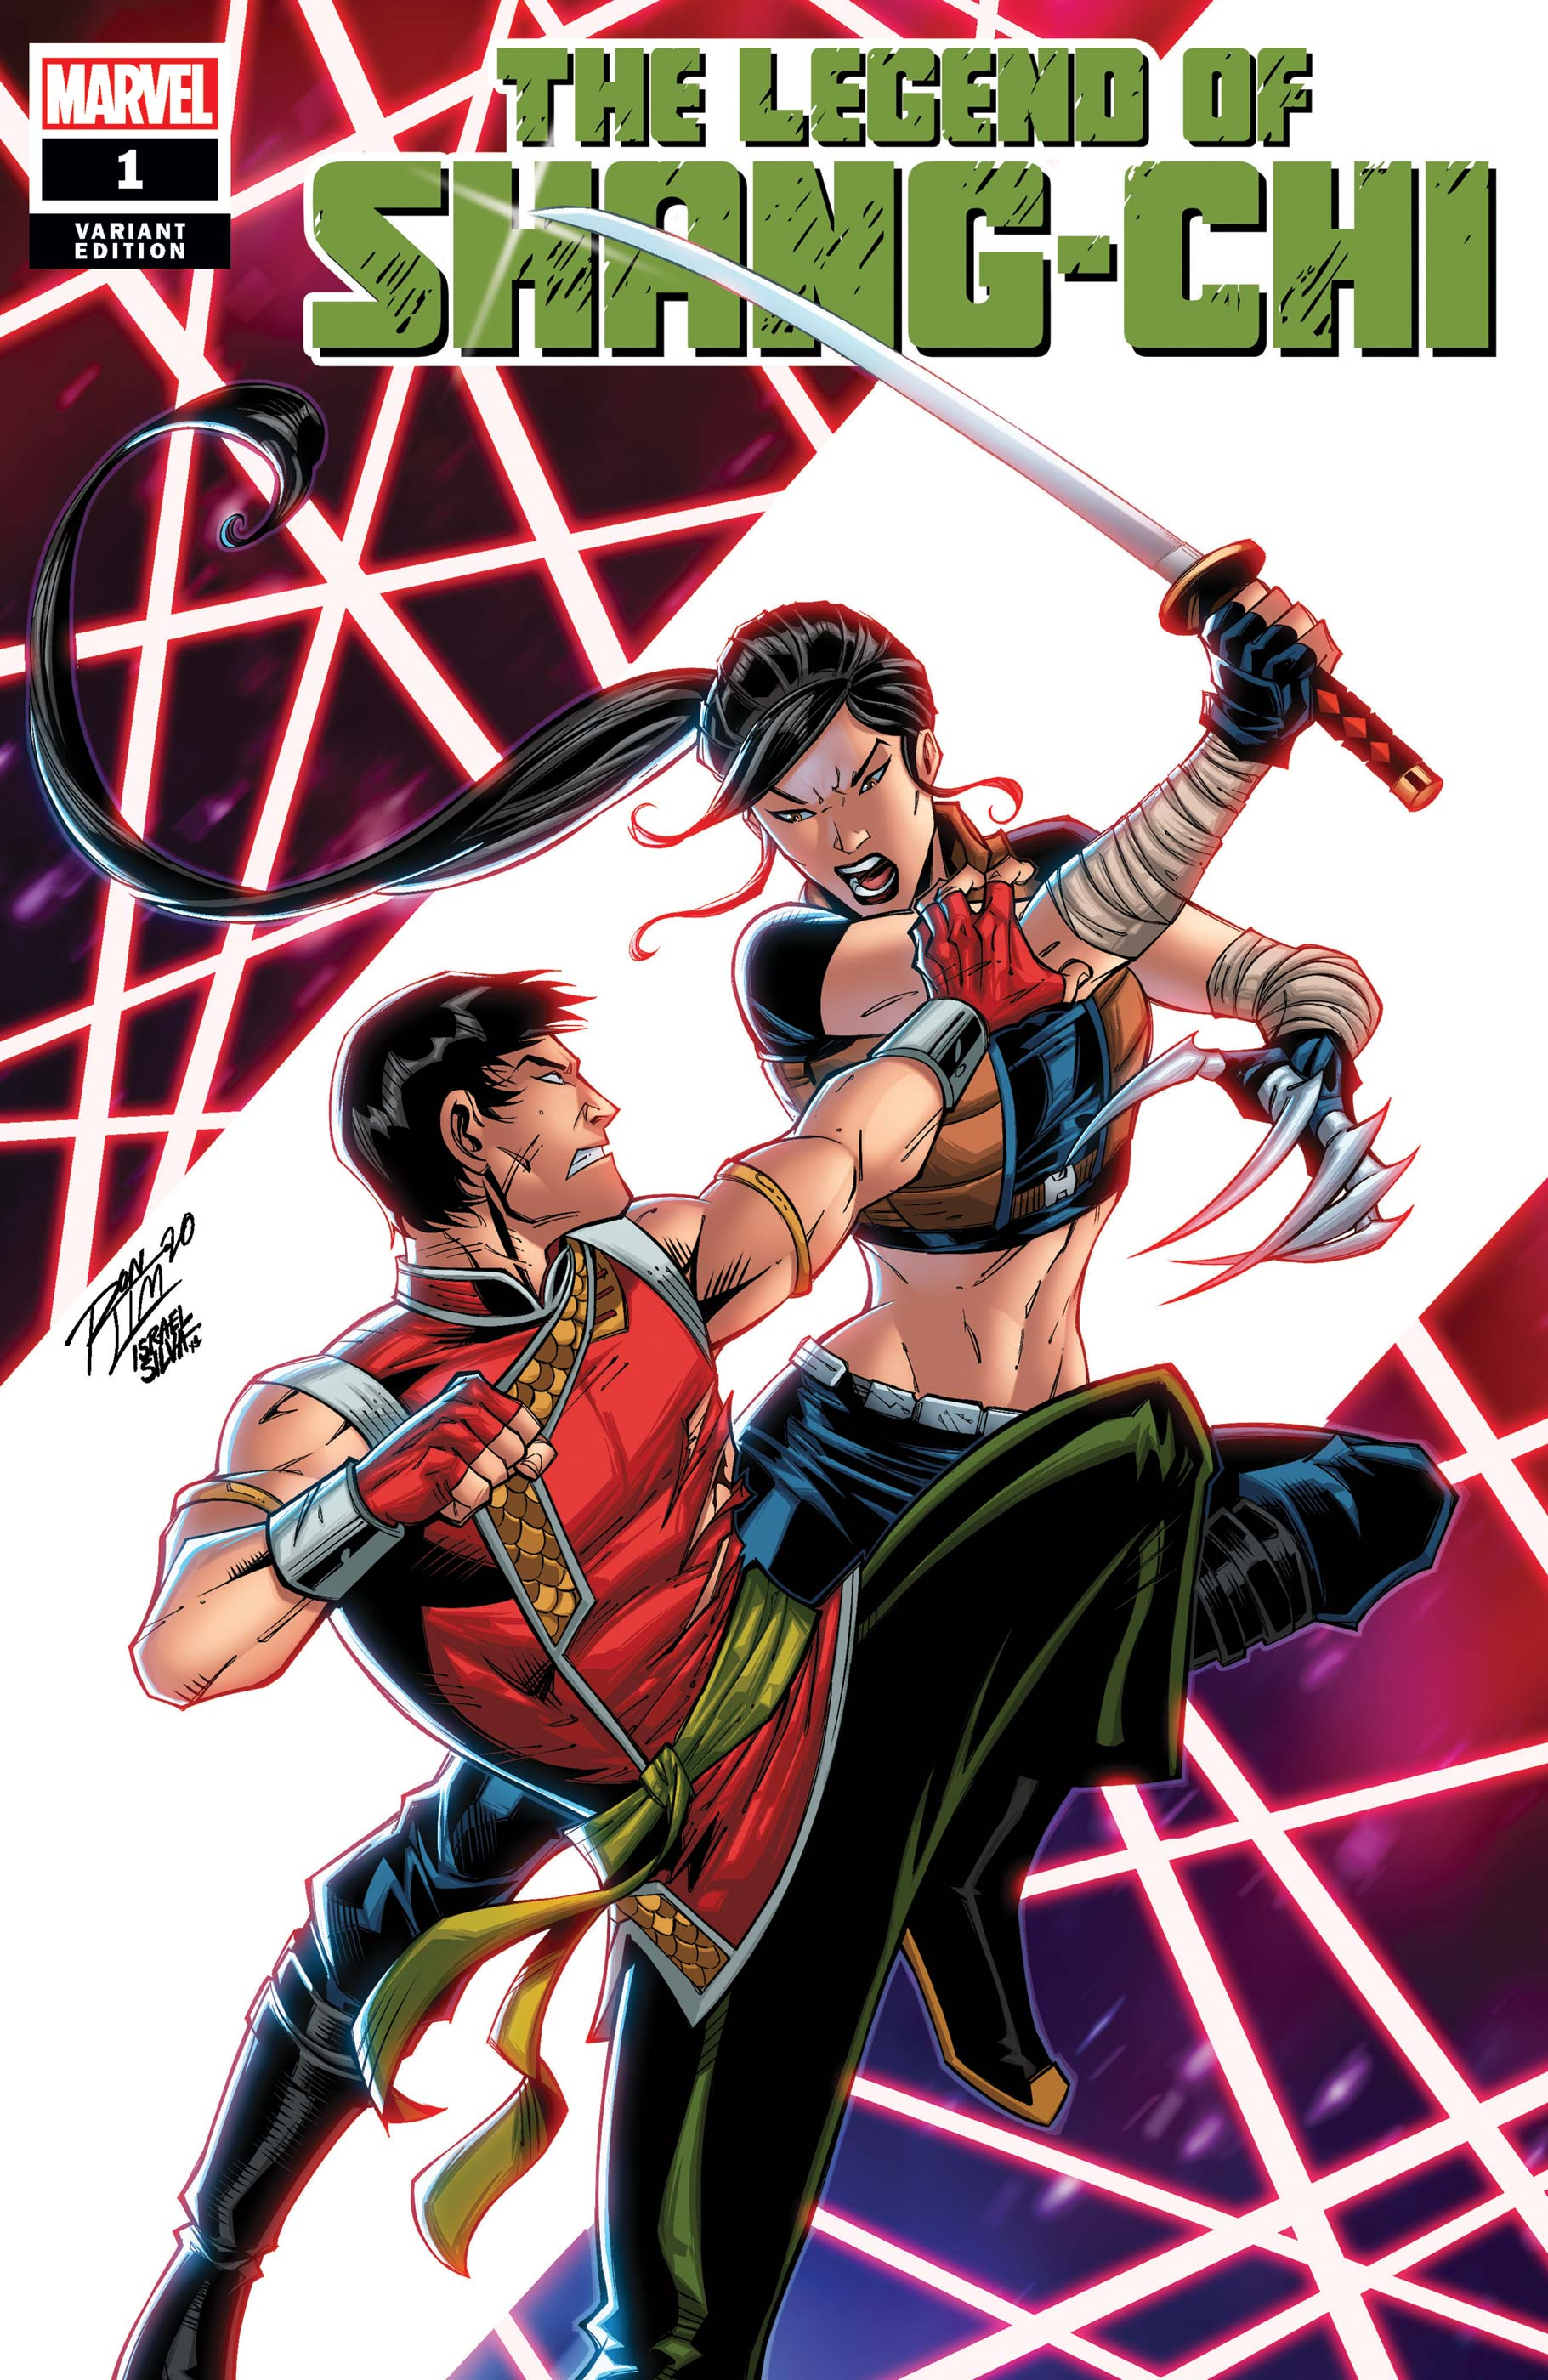 The Legend of Shang-Chi #1 Variant Cover by Ron Lim